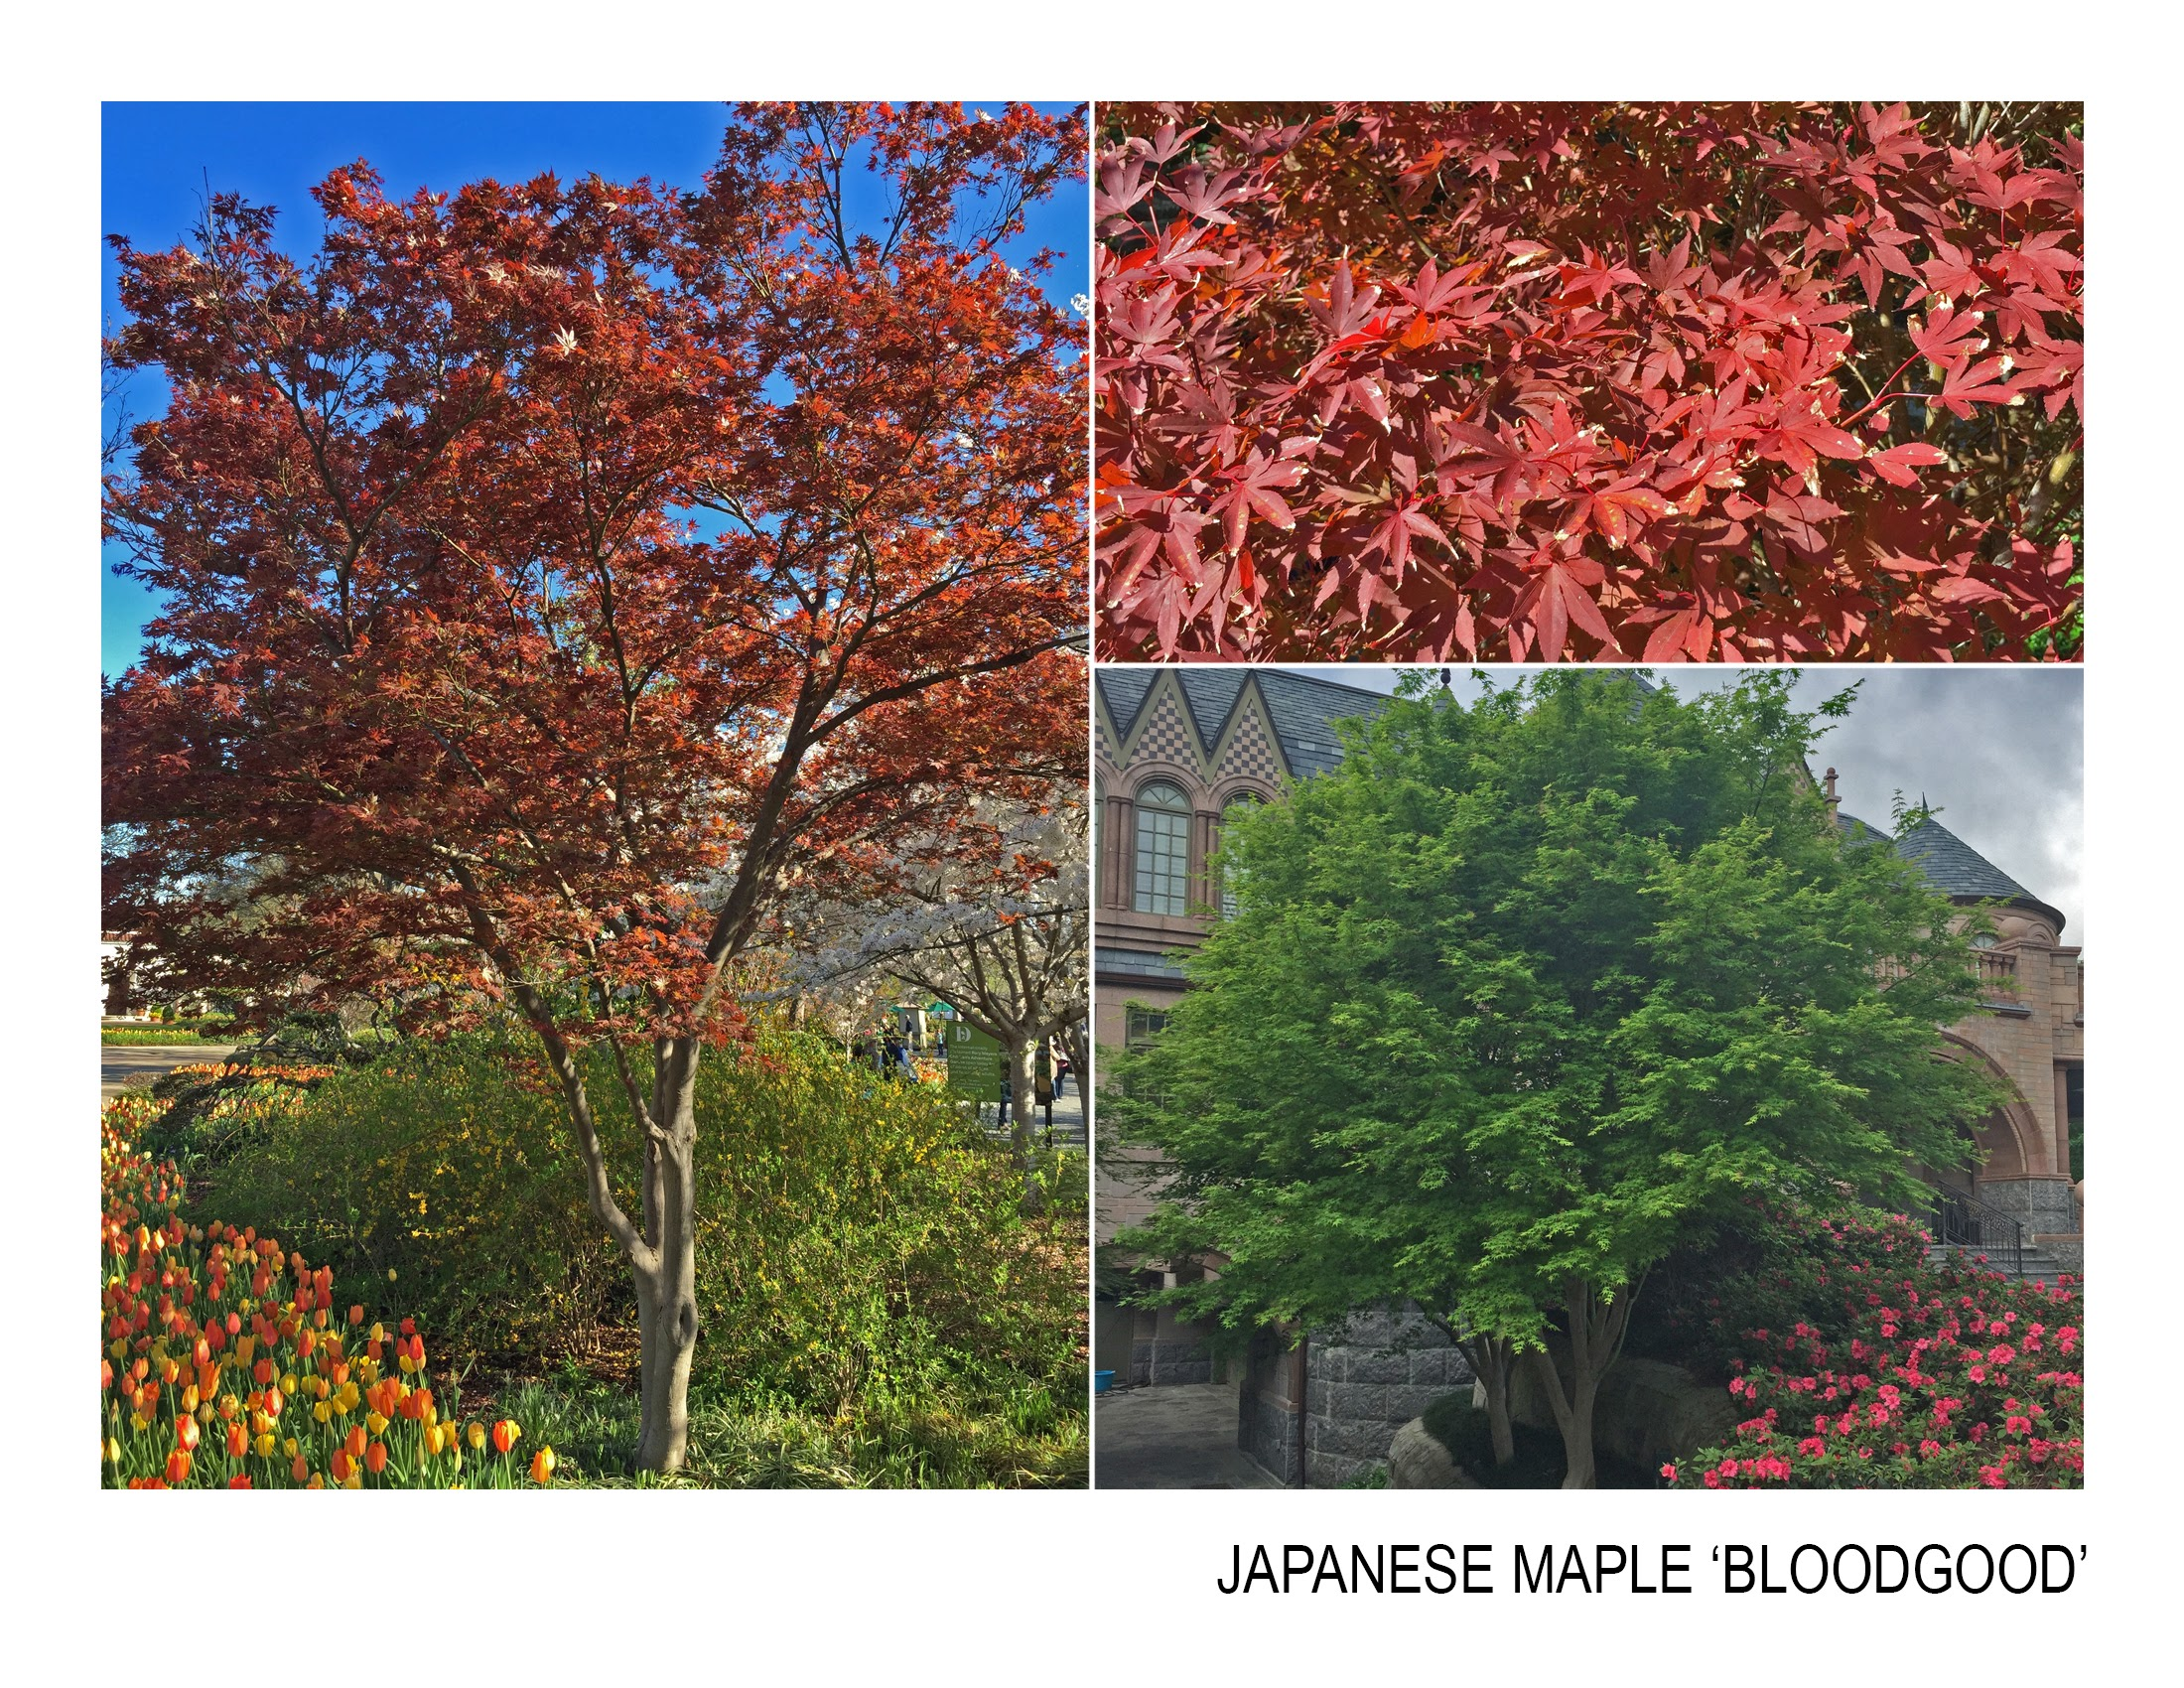 japanese maple 'bloodgood'.jpg